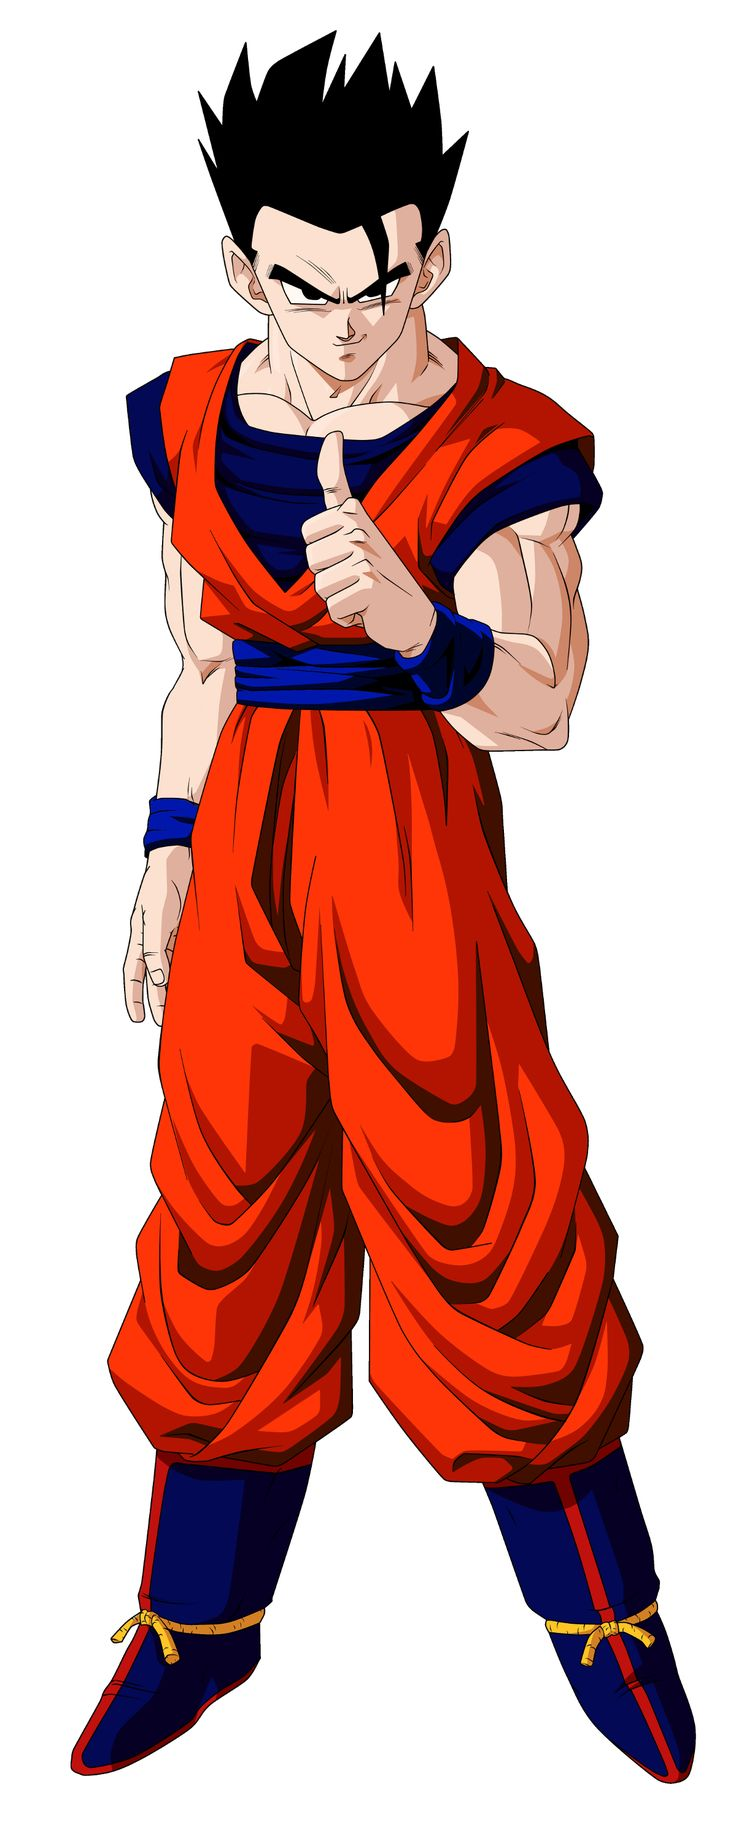 Son gohan t cnicas y habilidades drawings spoons and sons - Dragon ball z gohan images ...